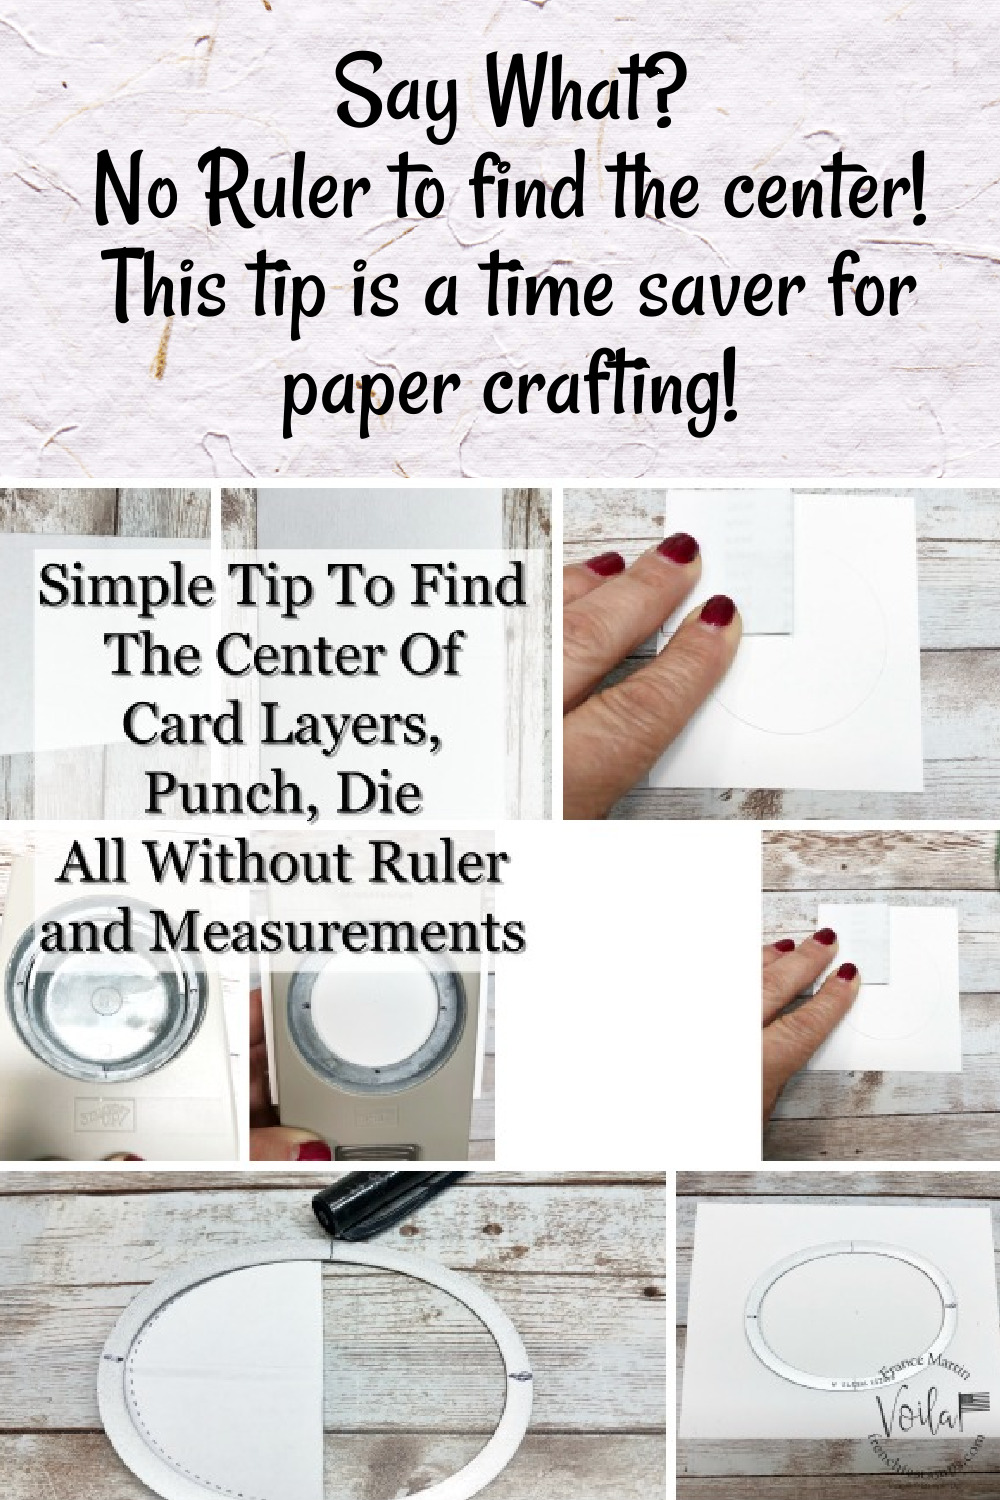 Great Tip To Find The Center Of Shapes and Cards Without A Ruler